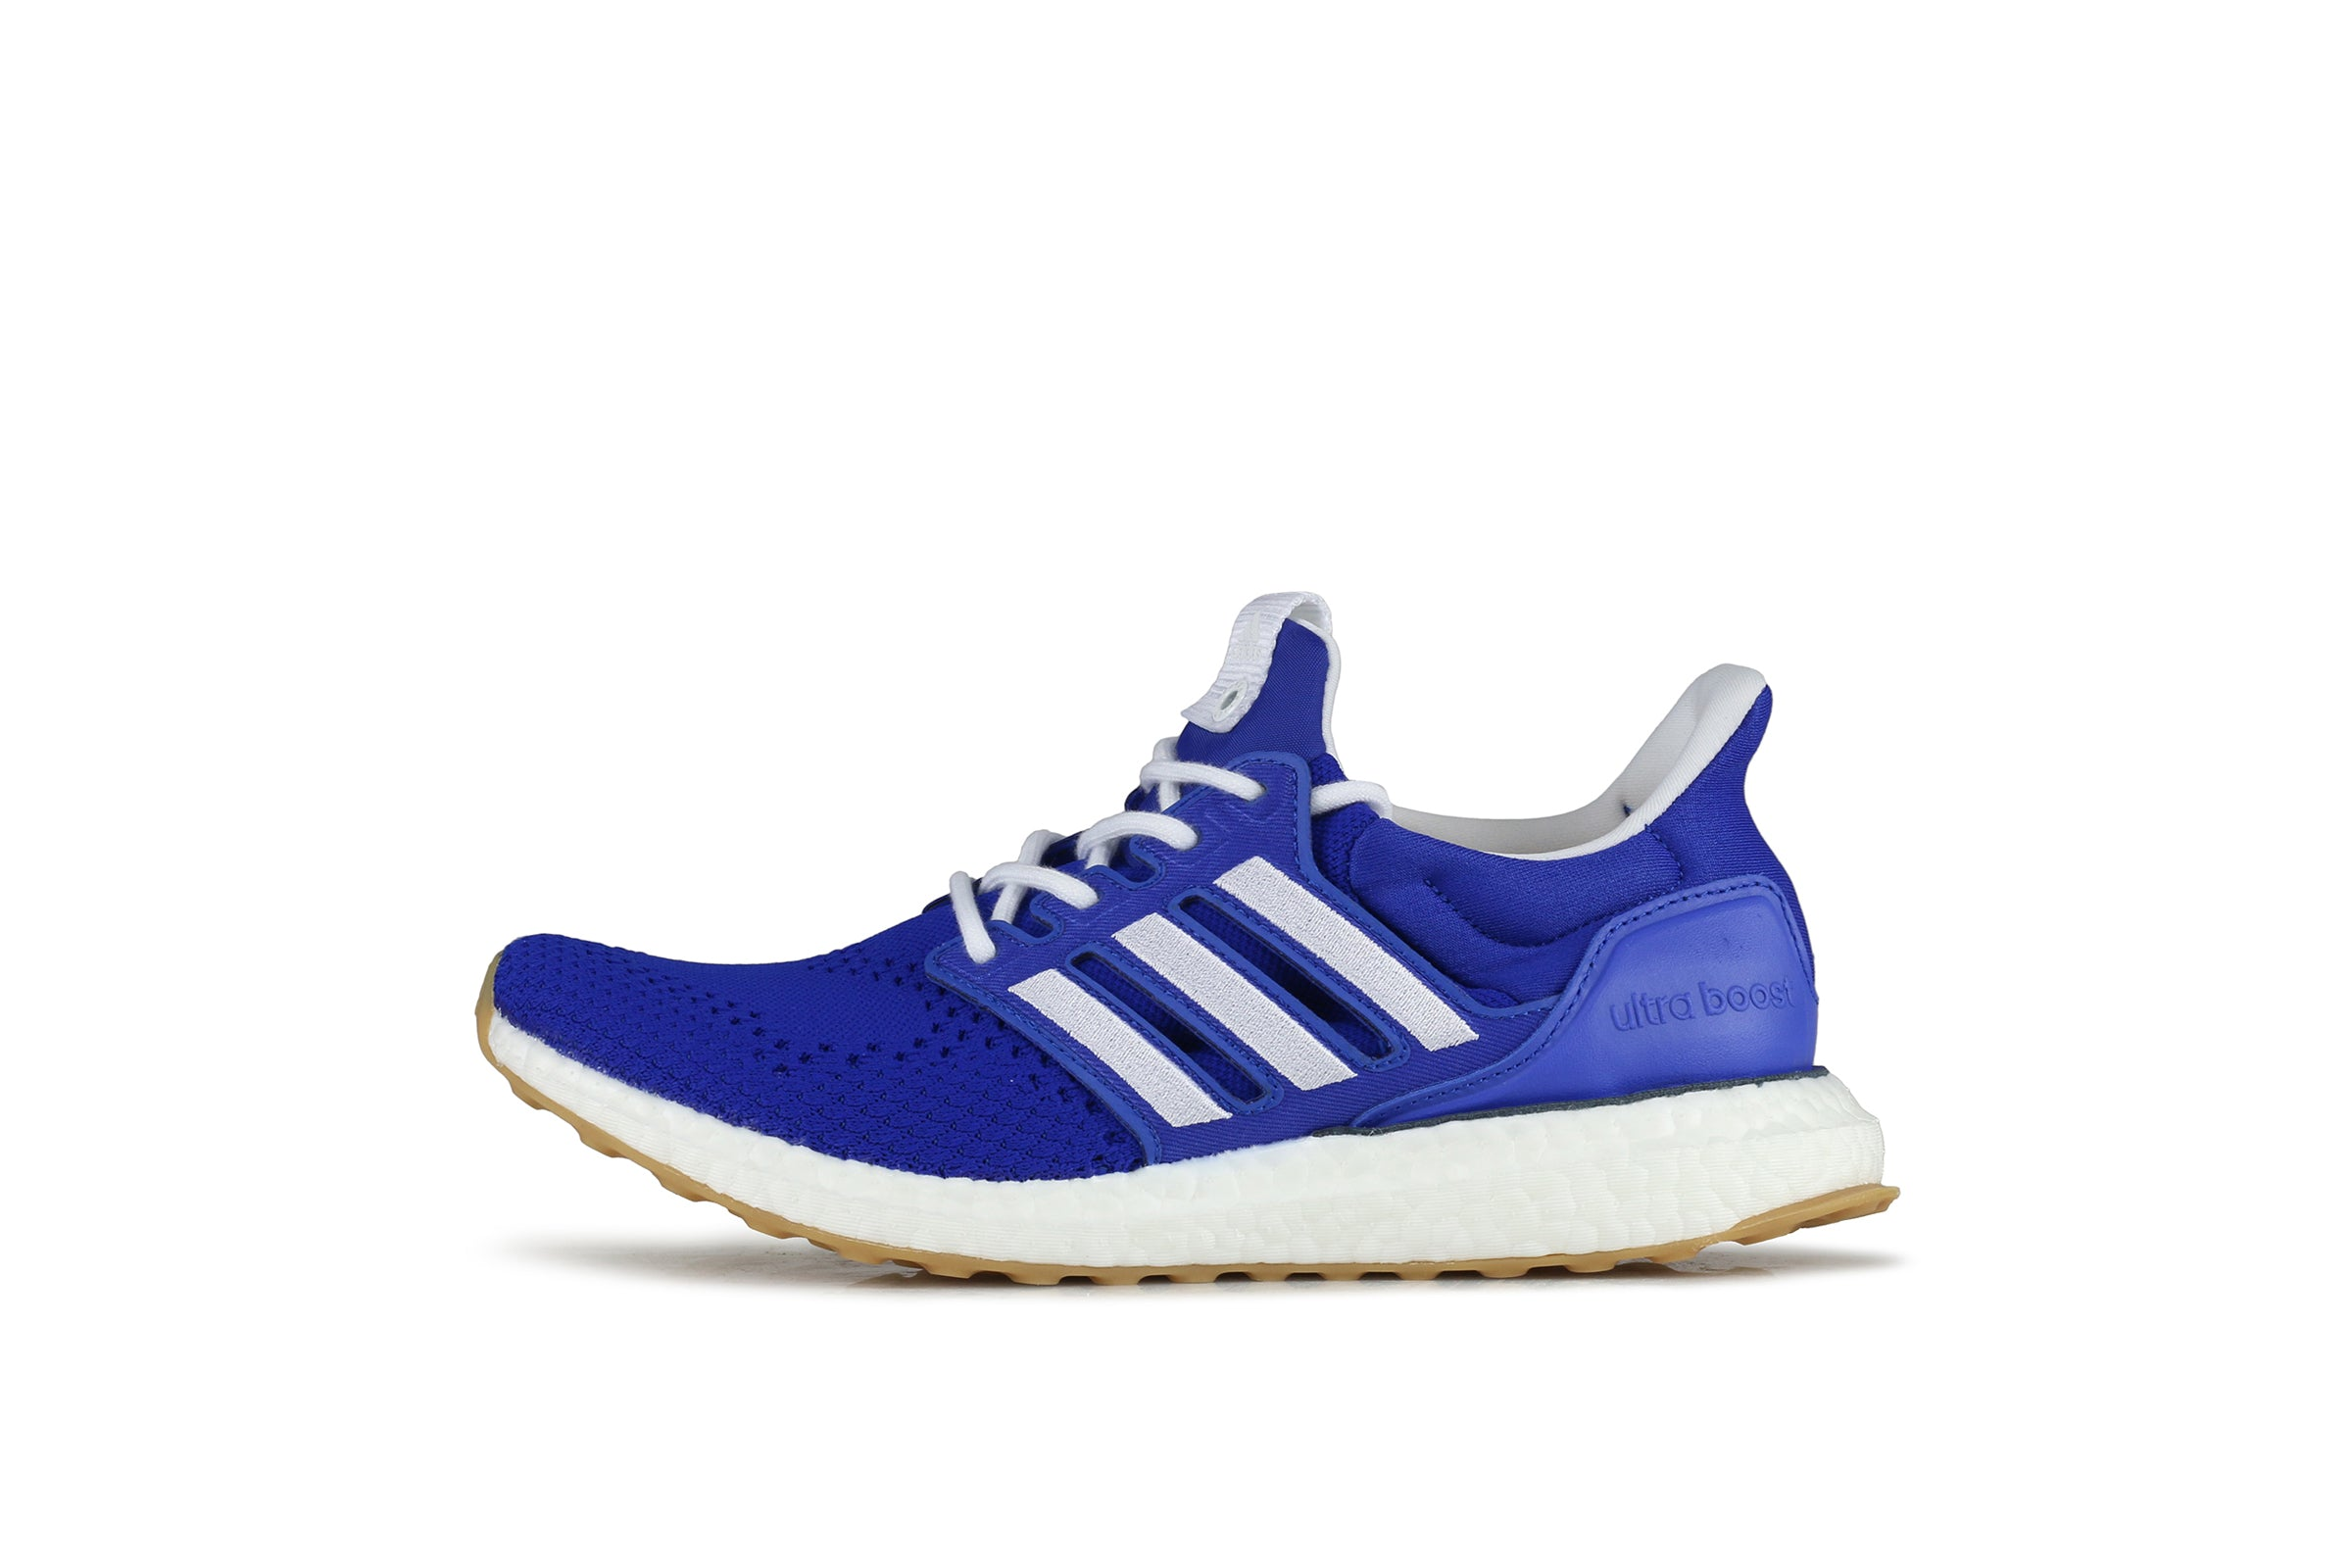 Adidas Ultraboost x Engineered Garments